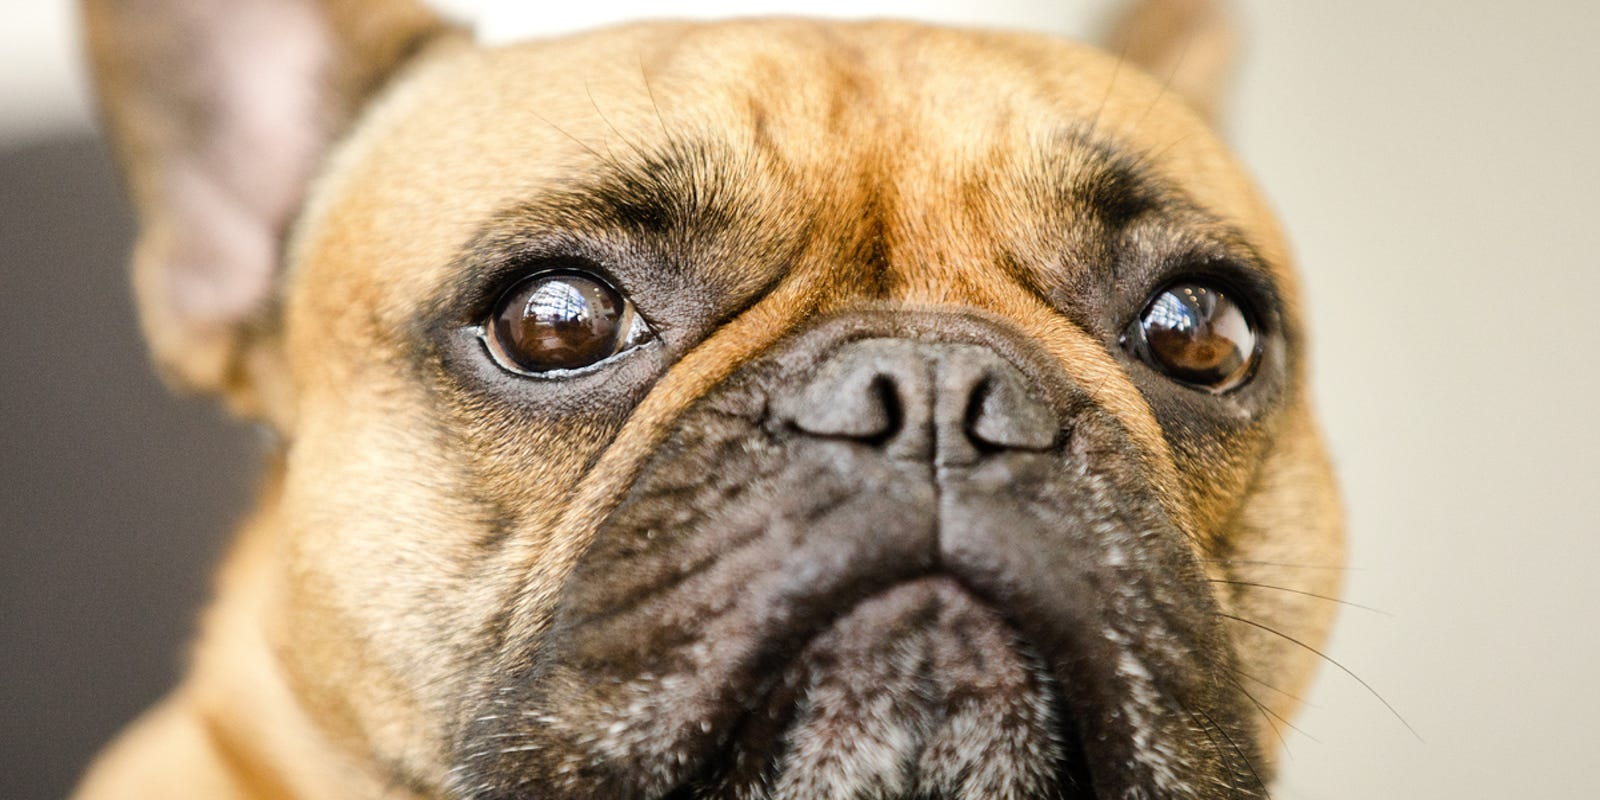 Dogs Developed Muscles To Make Puppy Dog Eyes At Humans